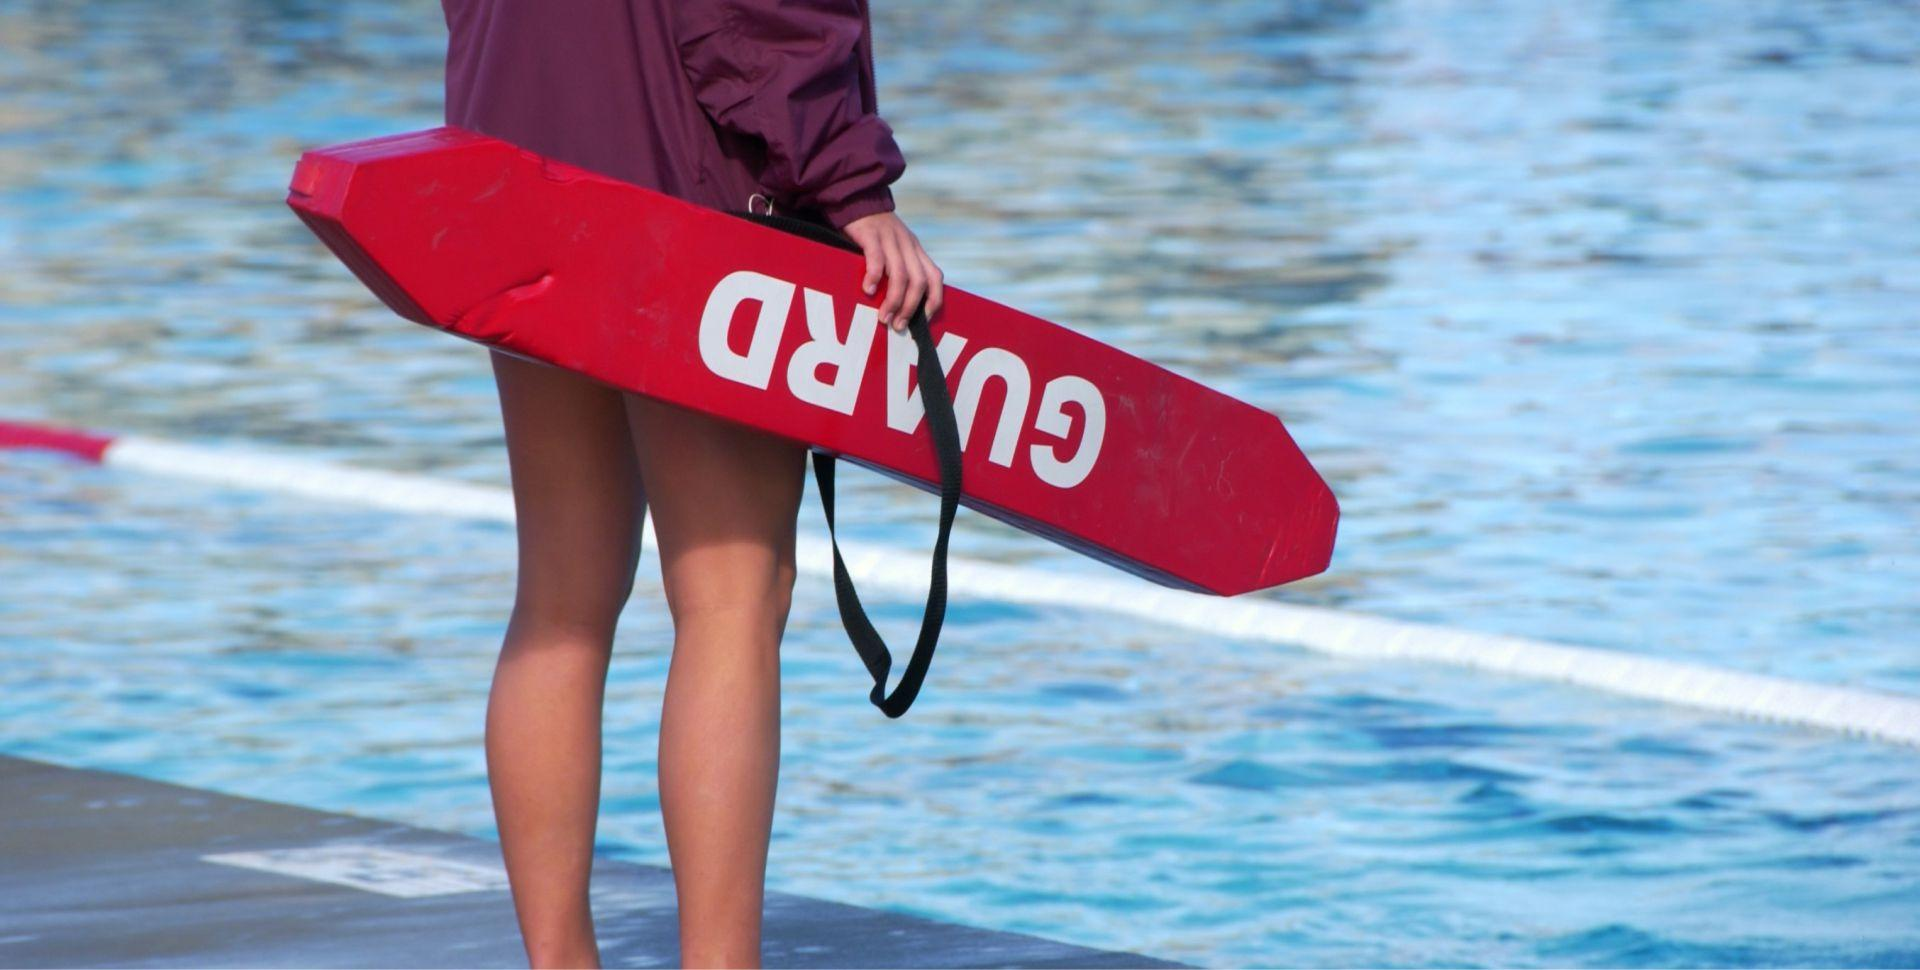 Lifeguarding banner